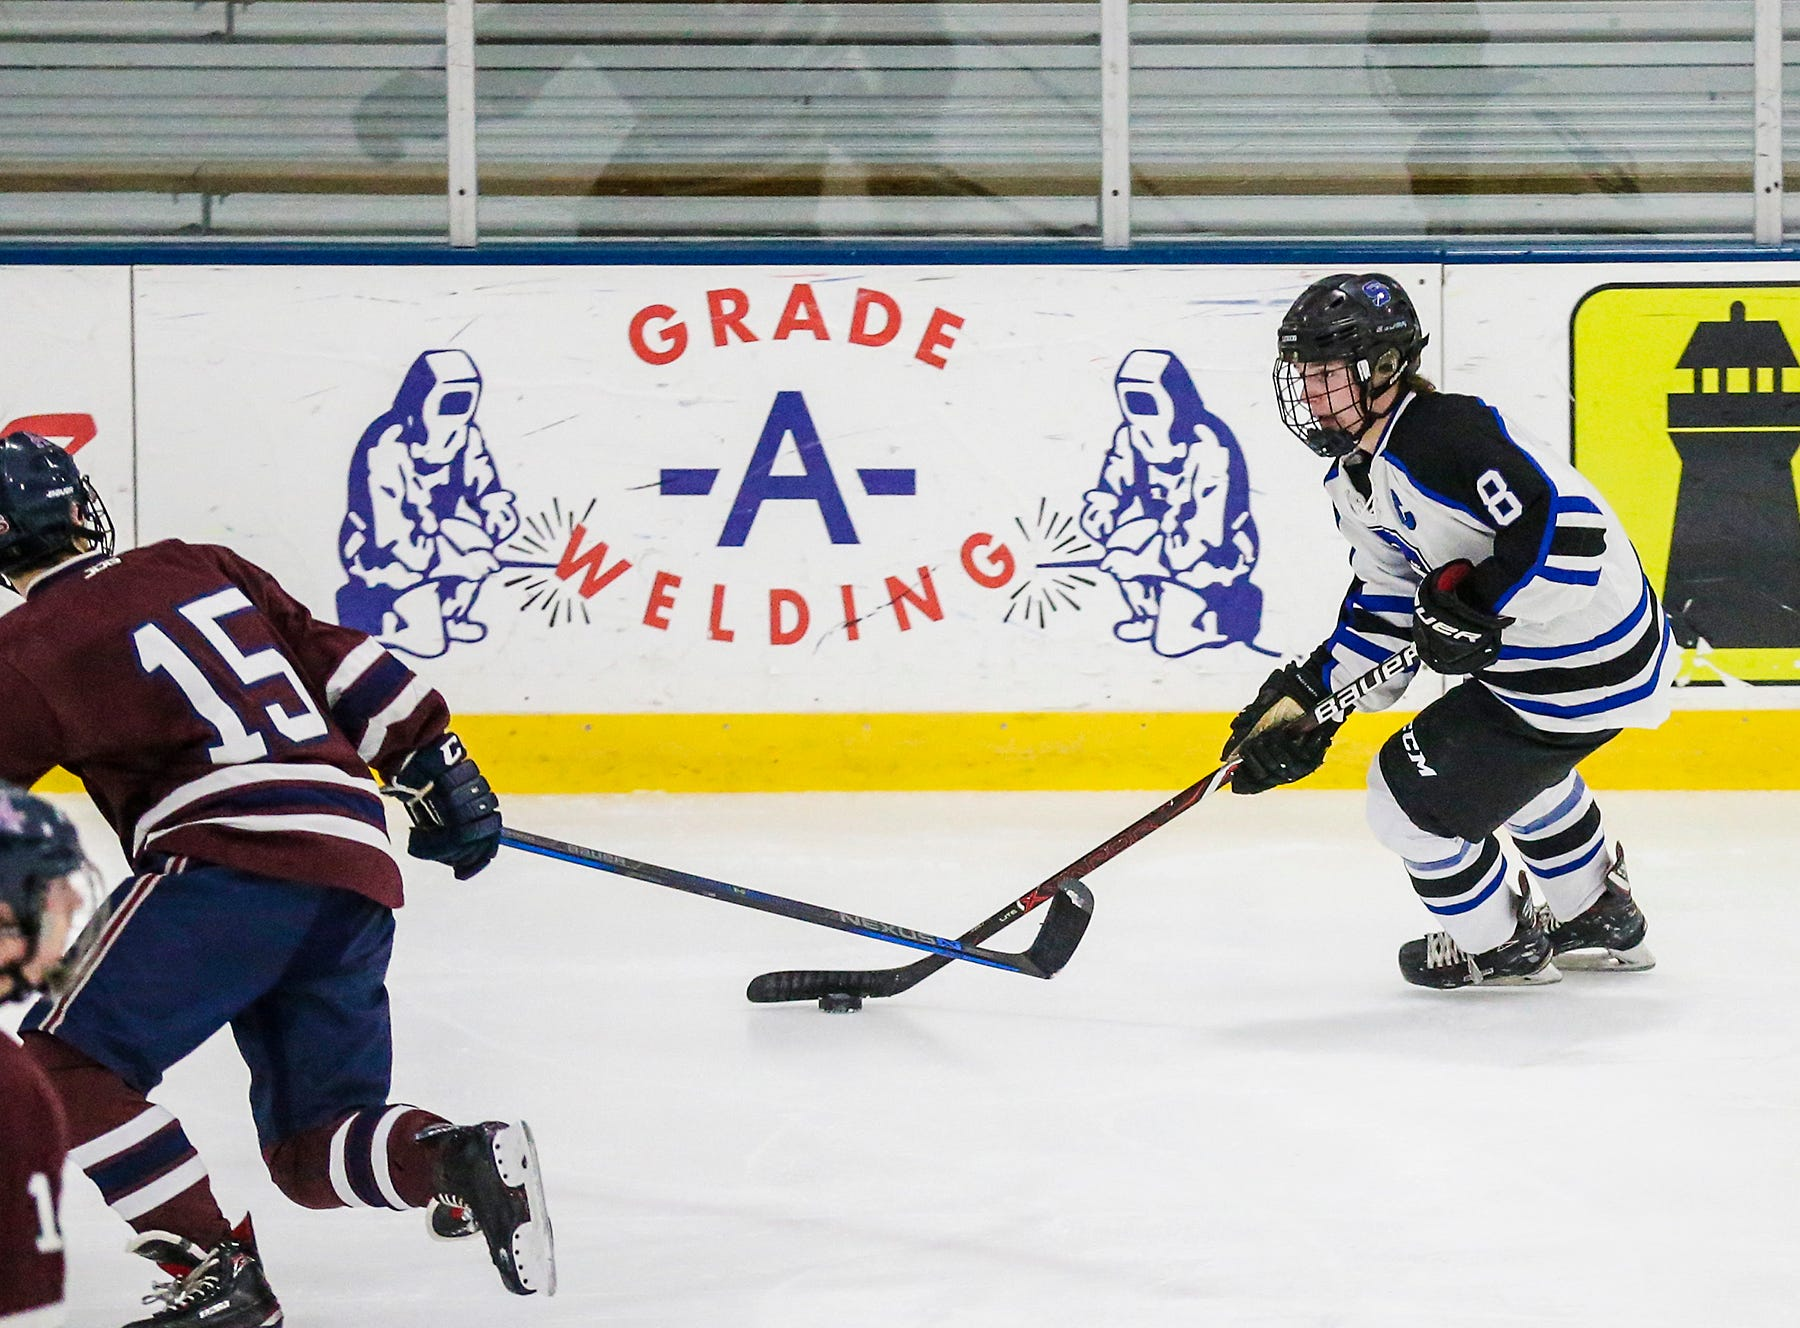 St. Mary's Springs Academy co-op hockey's Zach Welsch works the puck against Appleton United's Brenden Ryan during their game Thursday, November 29, 2018 played in Fond du Lac. Springs won the game 8-1. Doug Raflik/USA TODAY NETWORK-Wisconsin